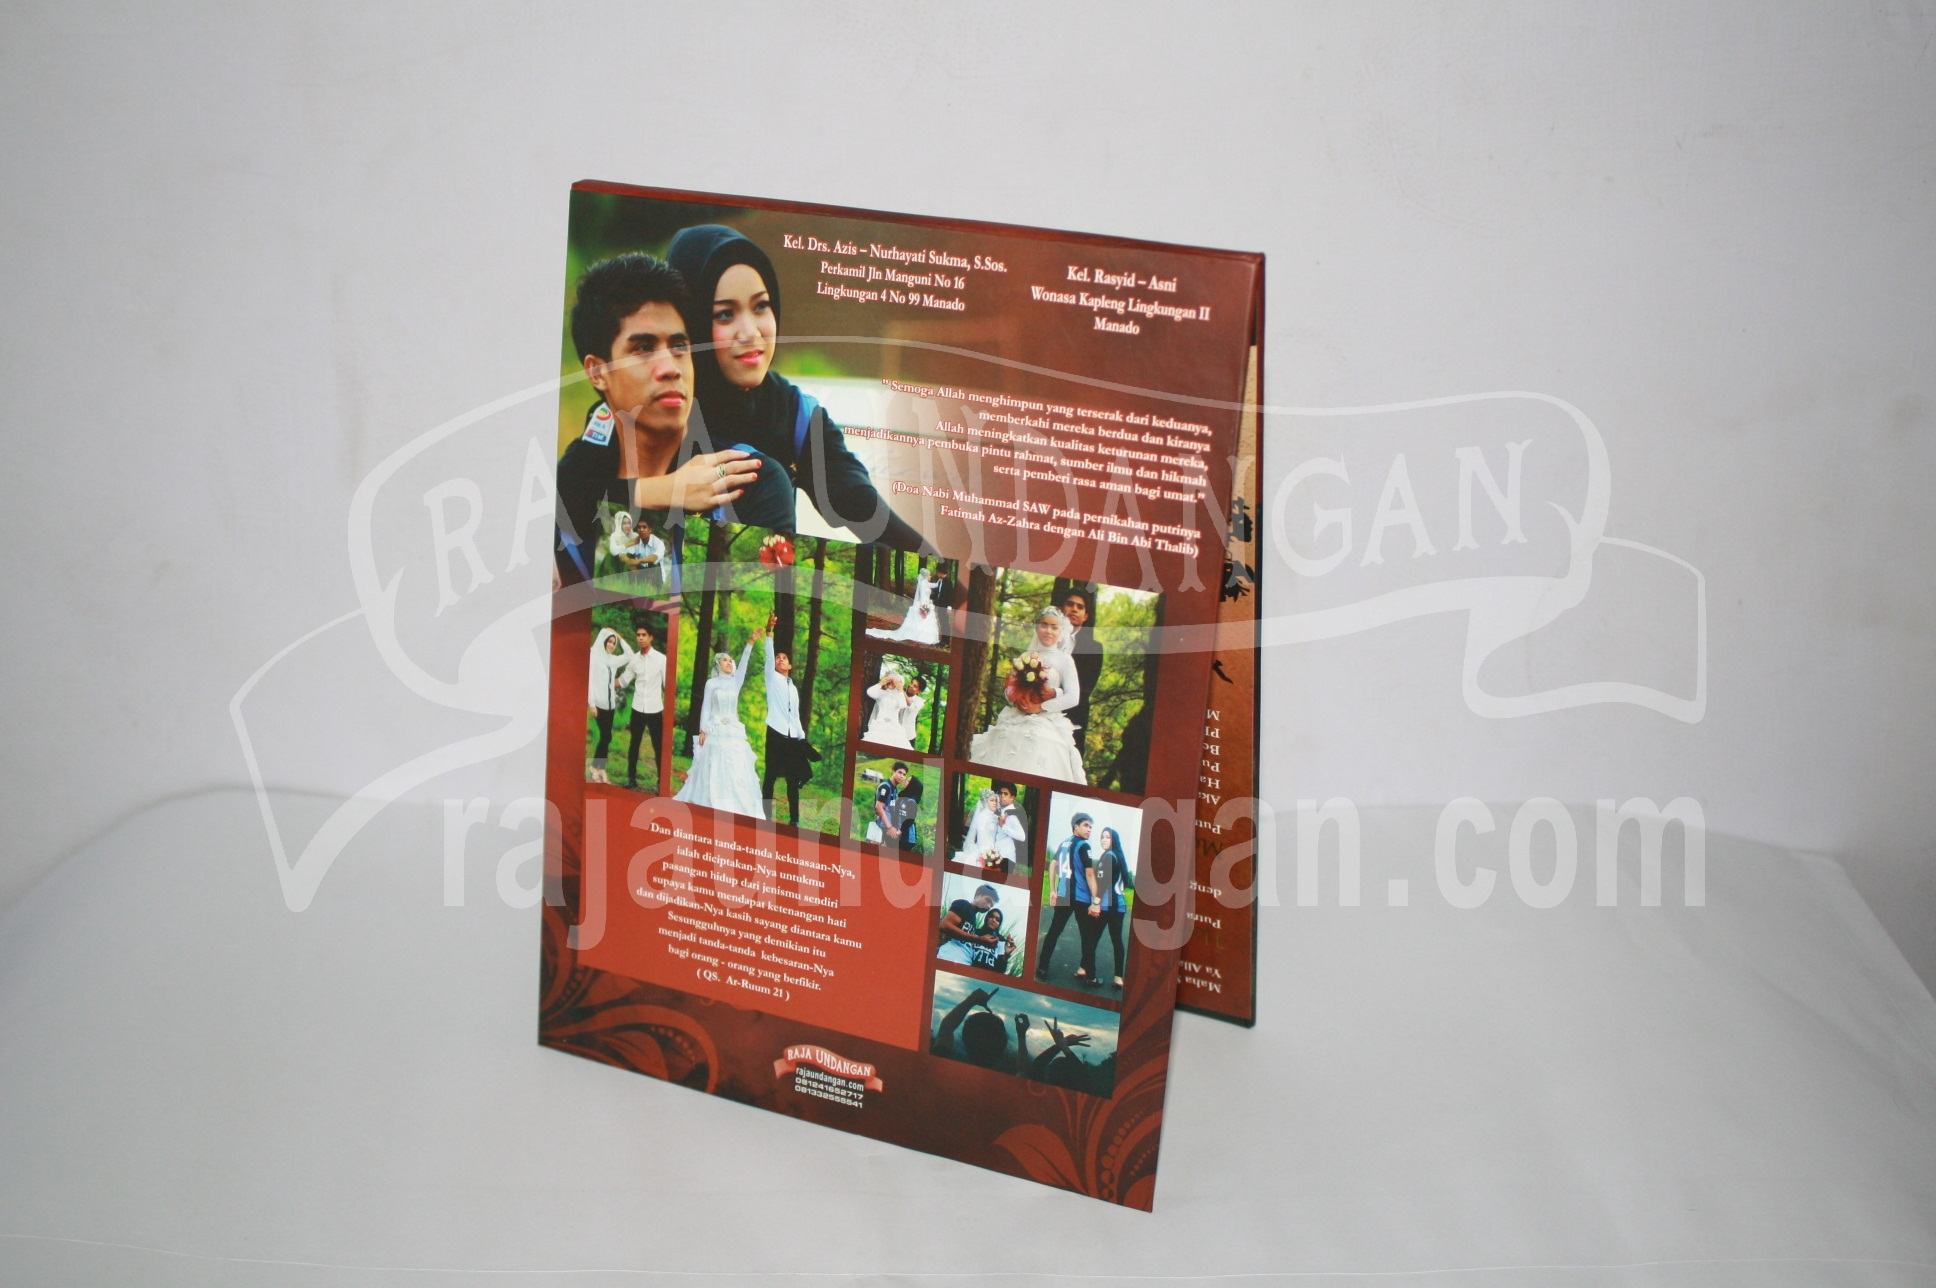 Undangan Pernikahan Hardcover Pop Up Heri dan Mona EDC 43 11 - Membuat Wedding Invitations Simple di Dr. Sutomo